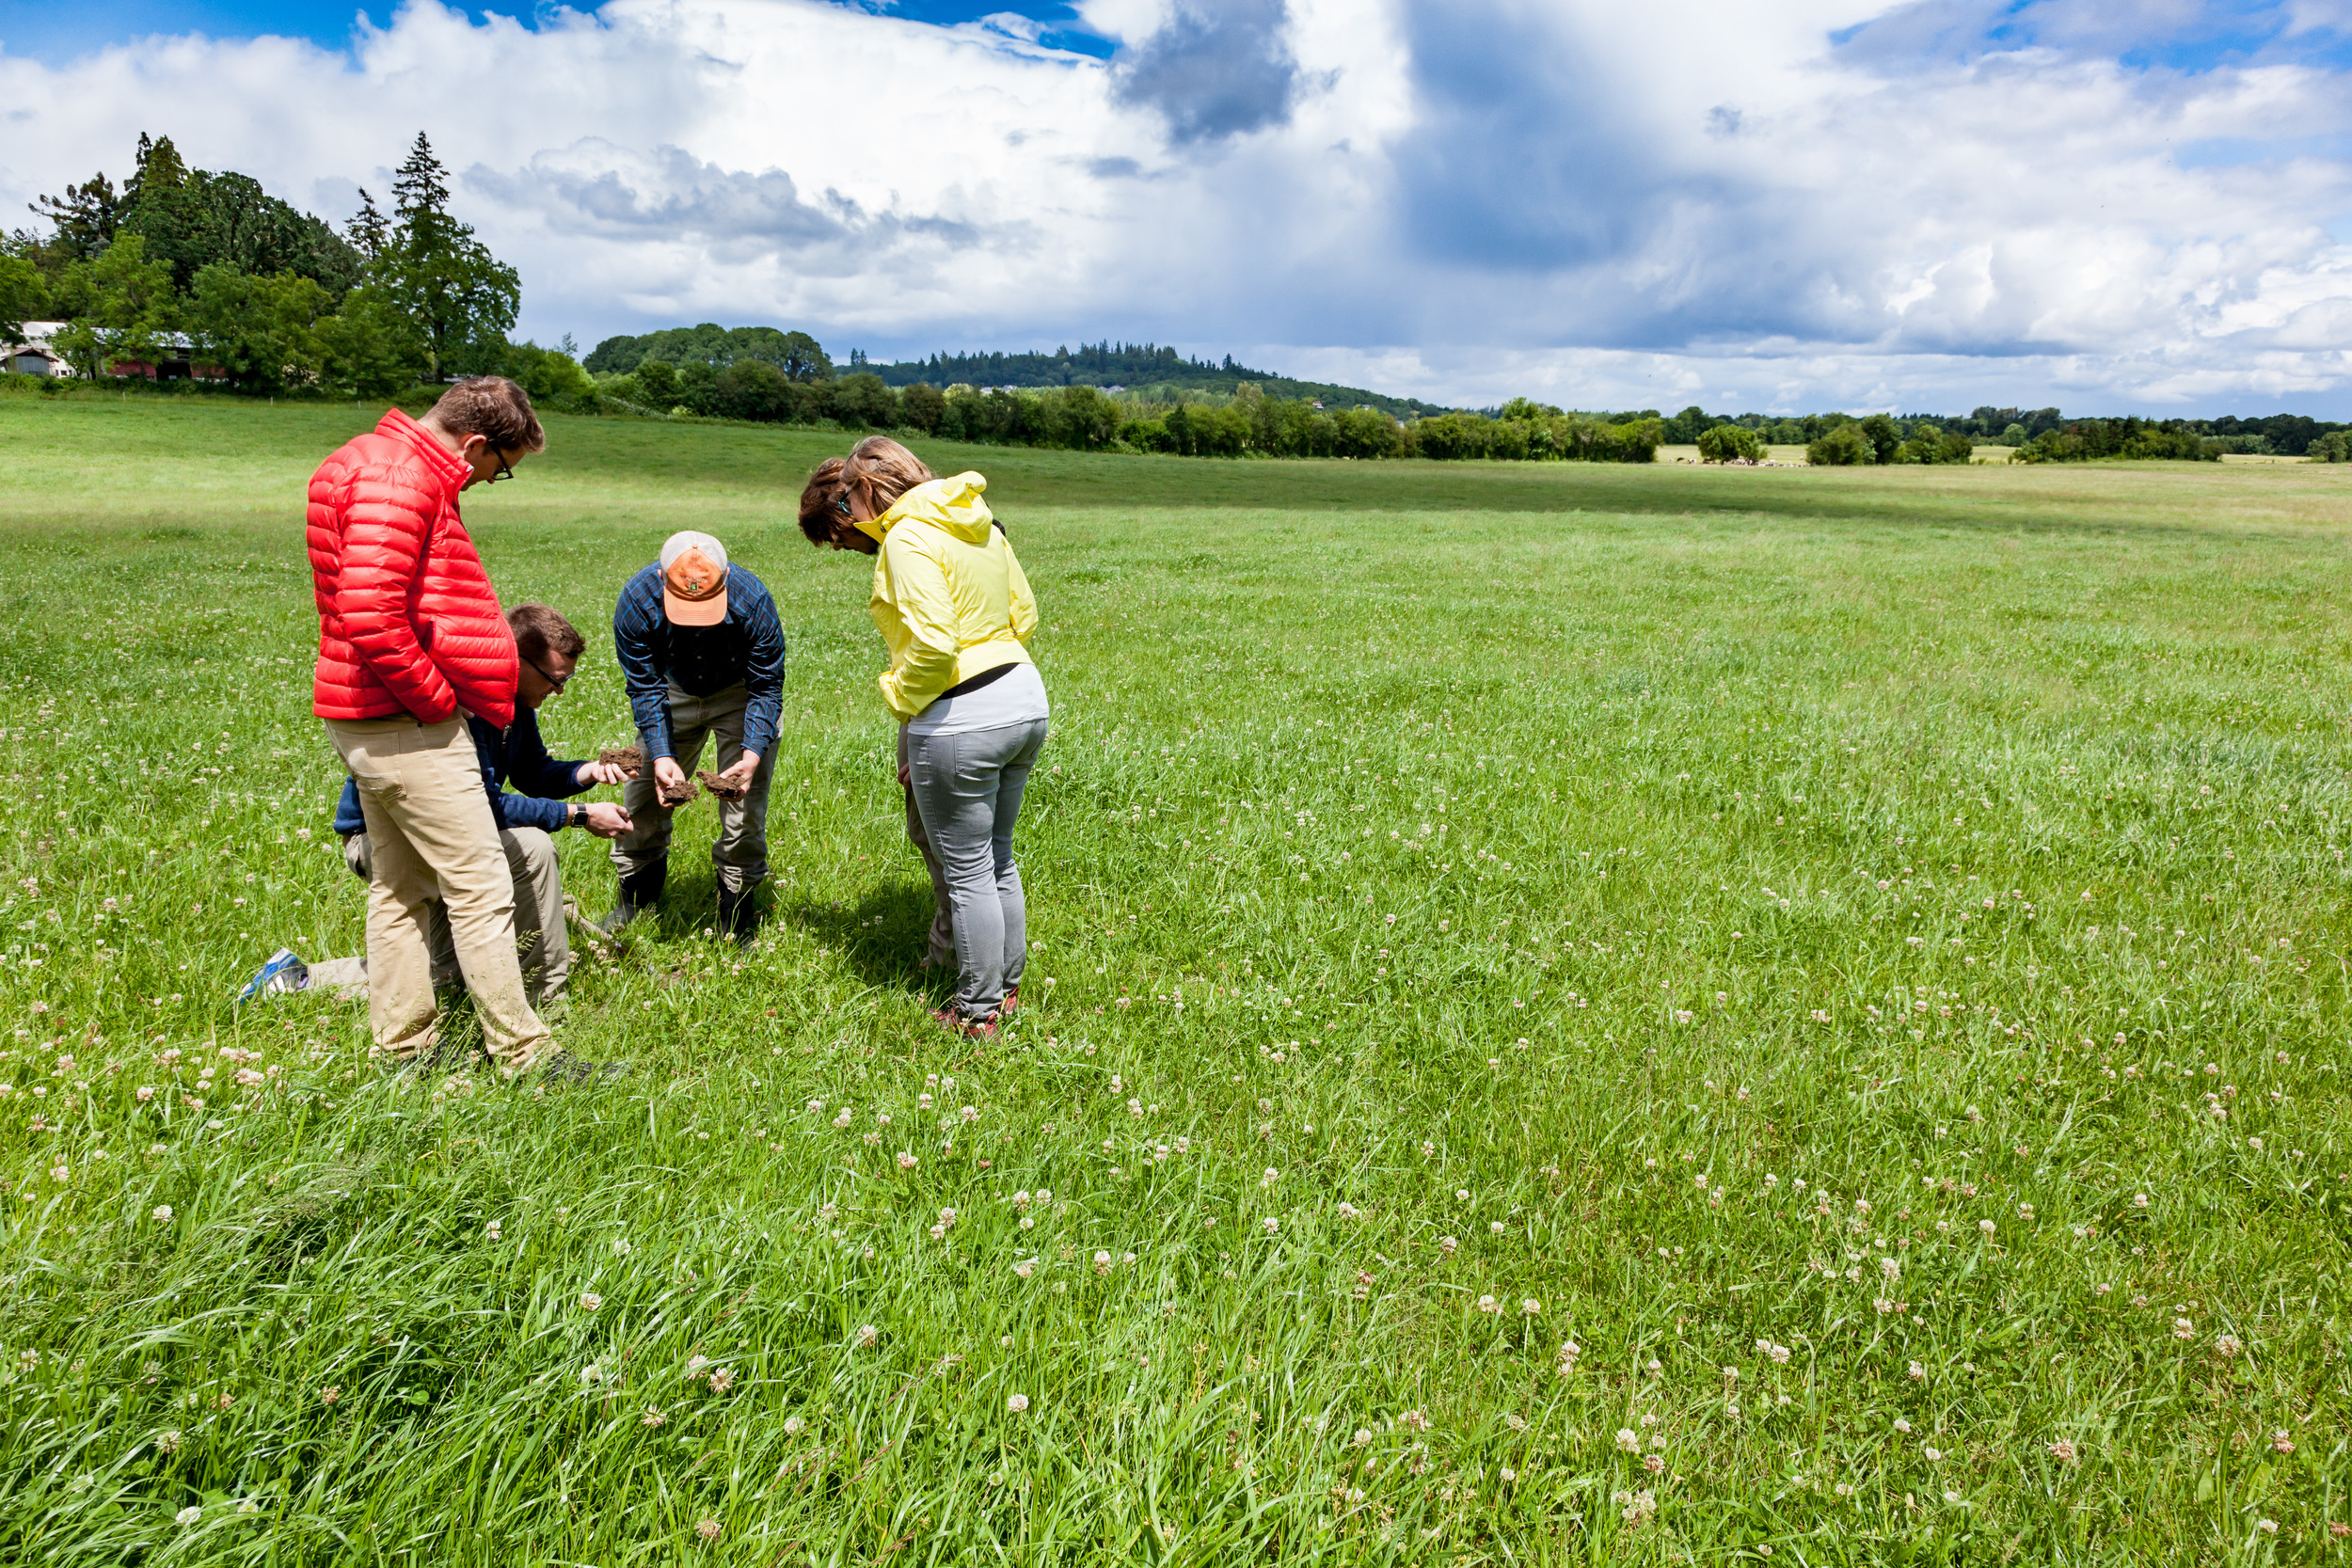 """Introducing diverse pastures into crop rotations can improve soil quality and fertility. Our team and partners examine the soil in a converted pasture in Oregon that has now been sustainably managed for several years.     Normal   0           false   false   false     EN-US   X-NONE   X-NONE                                                                                                                                                                                                                                                                                                                                                                                                                                                                                                                                                                                                                                                                                                                                                                                                                                                        /* Style Definitions */  table.MsoNormalTable {mso-style-name:""""Table Normal""""; mso-tstyle-rowband-size:0; mso-tstyle-colband-size:0; mso-style-noshow:yes; mso-style-priority:99; mso-style-parent:""""""""; mso-padding-alt:0in 5.4pt 0in 5.4pt; mso-para-margin-top:0in; mso-para-margin-right:0in; mso-para-margin-bottom:8.0pt; mso-para-margin-left:0in; line-height:107%; mso-pagination:widow-orphan; font-size:11.0pt; font-family:""""Calibri"""",sans-serif; mso-ascii-font-family:Calibri; mso-ascii-theme-font:minor-latin; mso-hansi-font-family:Calibri; mso-hansi-theme-font:minor-latin;}"""